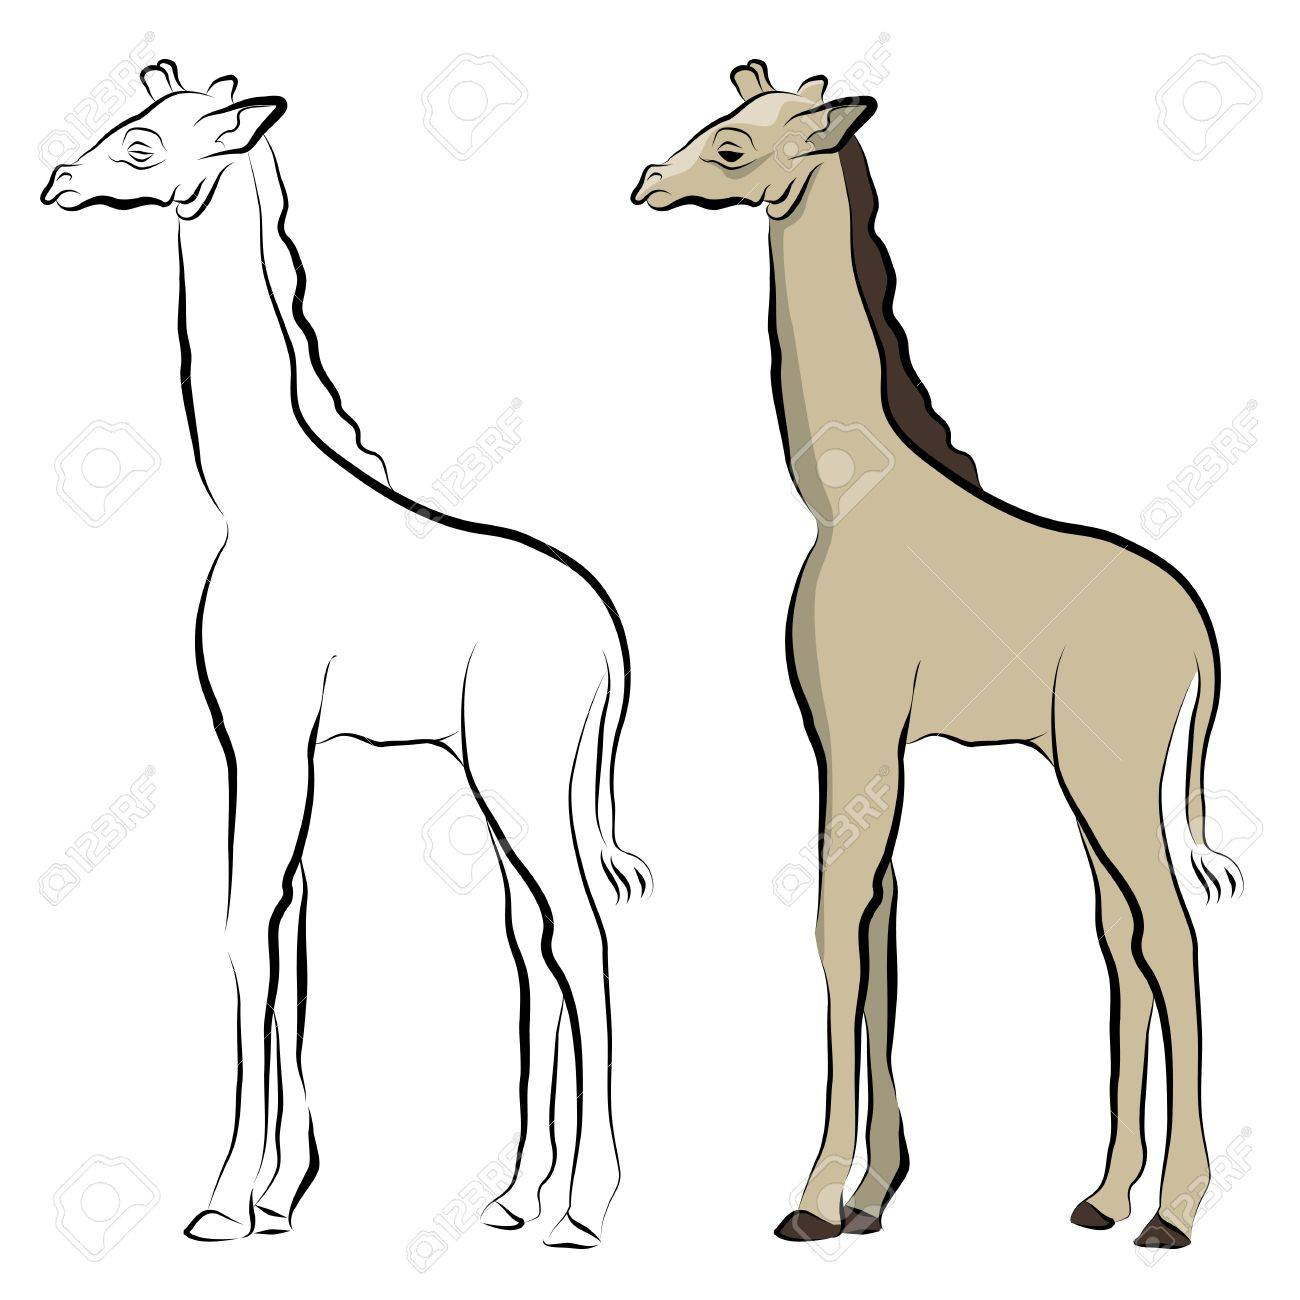 1300x1300 An Image Of A Giraffe Line Drawing. Royalty Free Cliparts, Vectors